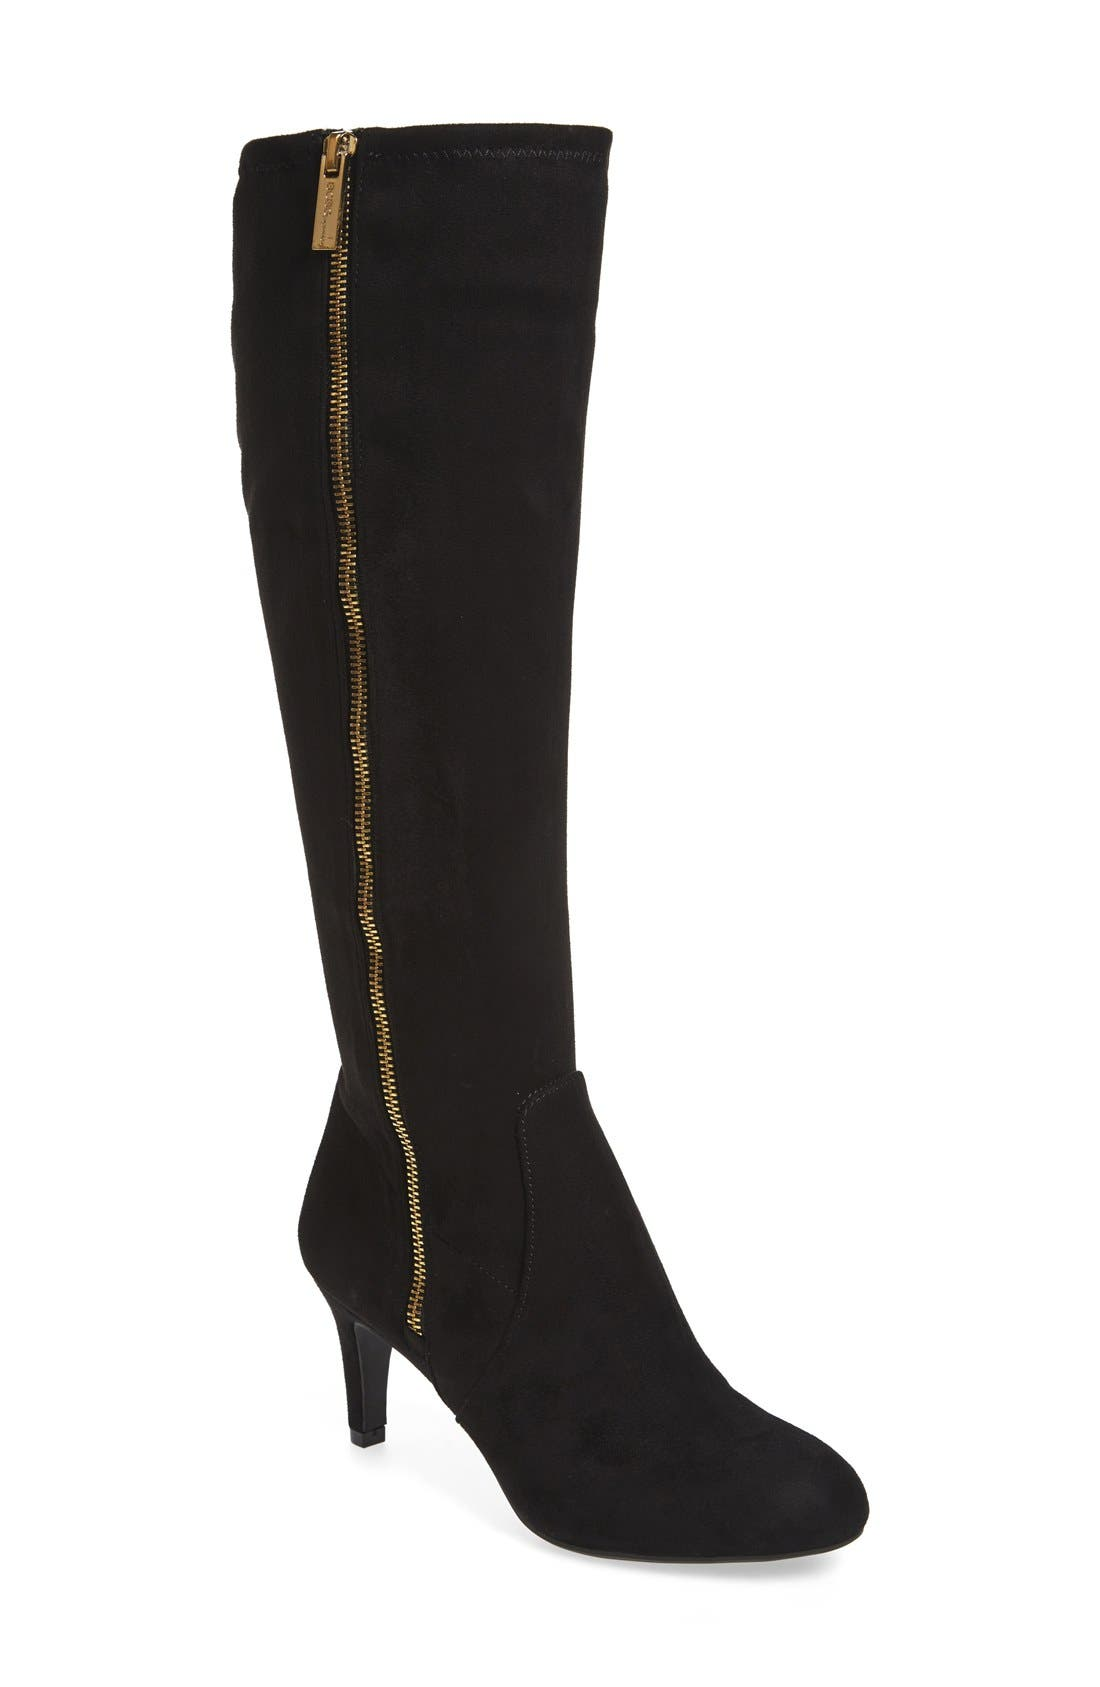 Main Image - BCBGeneration 'Rocko' Tall Boot (Women)